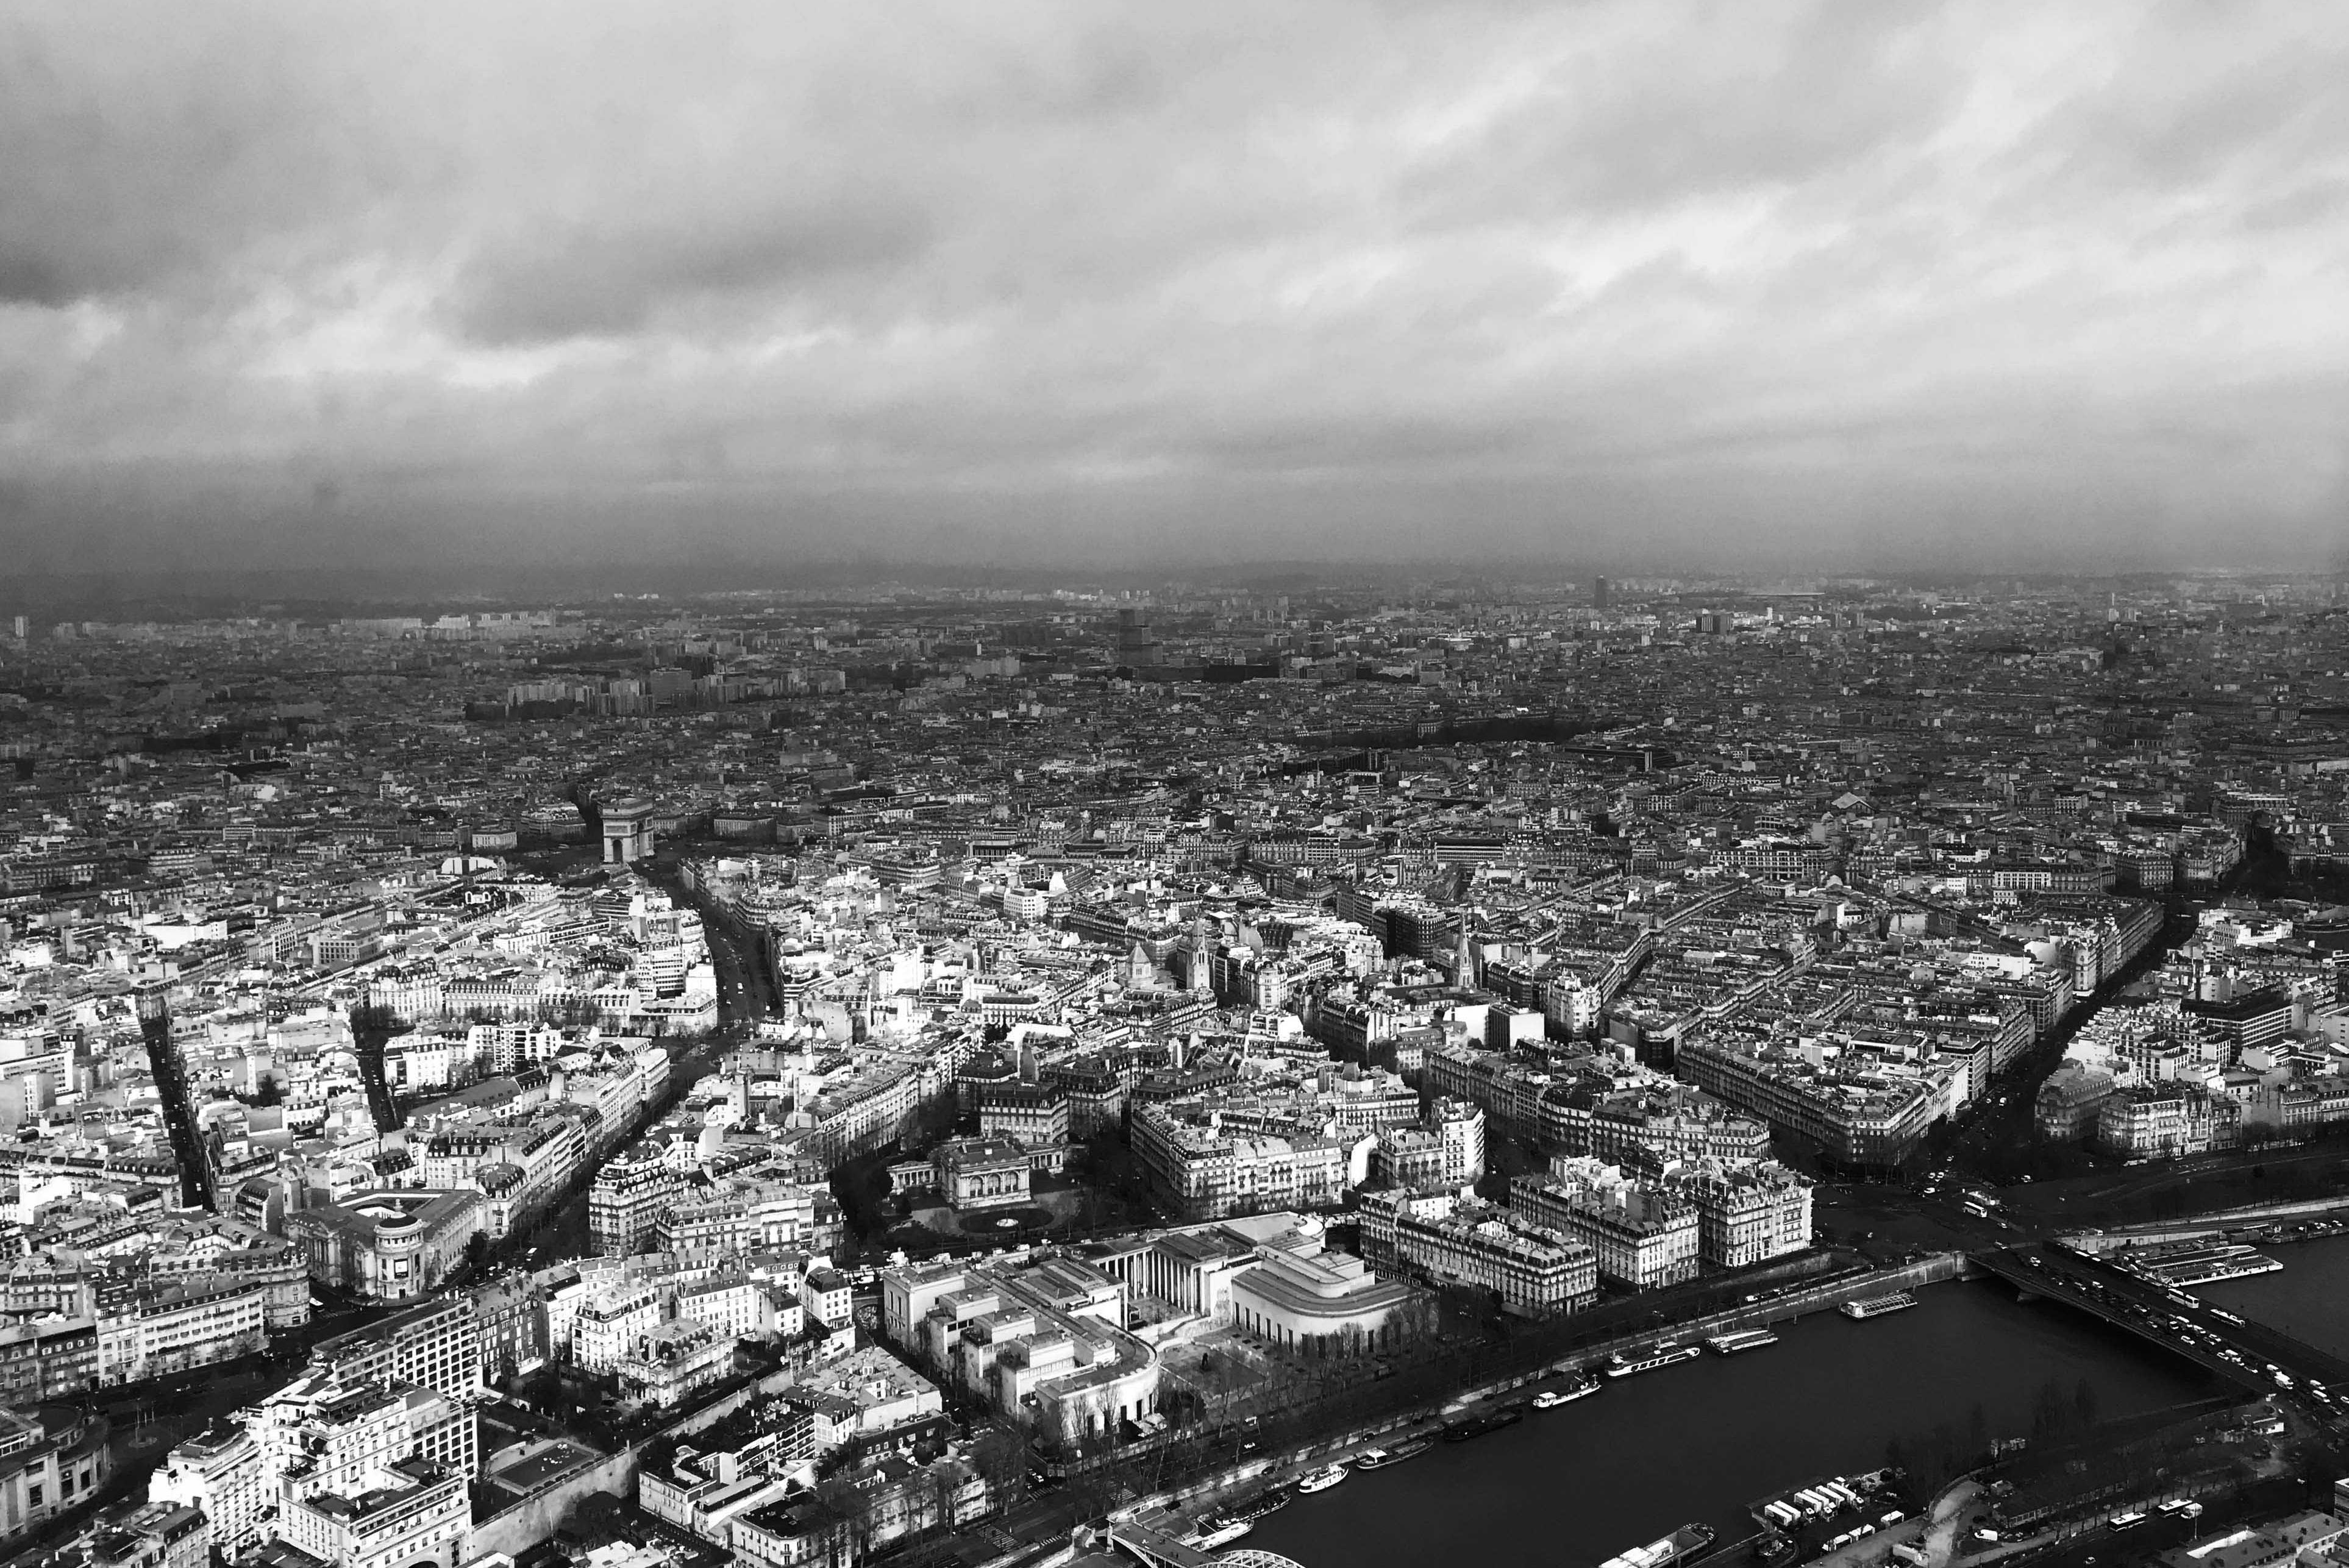 View of the city of paris from the top of the Eiffel Tower.